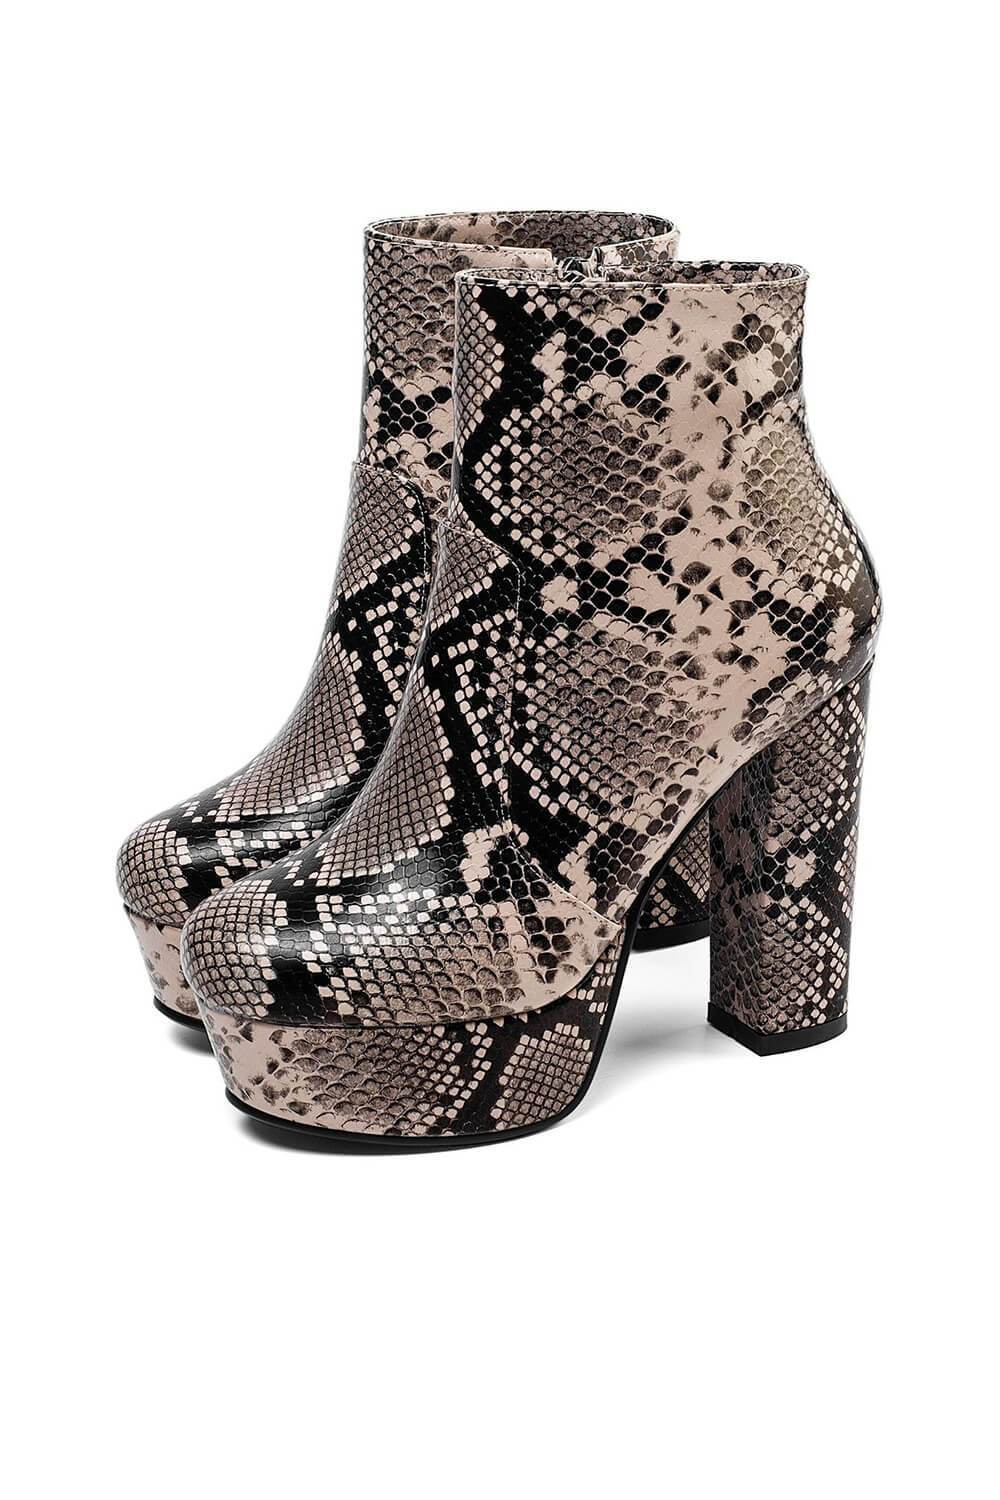 Black Gray Snakeskin Paltform Heeled Ankle Boots